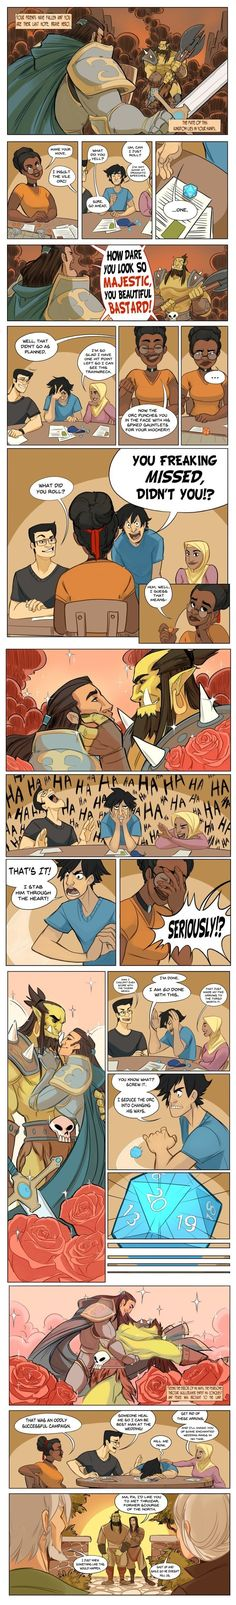 As the Charismatic Bard of the group, this is basically my job.(Written by Jasmine Walls, Illustrated by Amy Phillips) <<< I hope to God this really happened XD I play dnd and it's hilarious when things don't go to plan Dnd Funny, Funny Humor, Hilarious, Funny Art, Dungeons And Dragons Game, Dragon Memes, Me Anime, Fandoms, Geek Culture